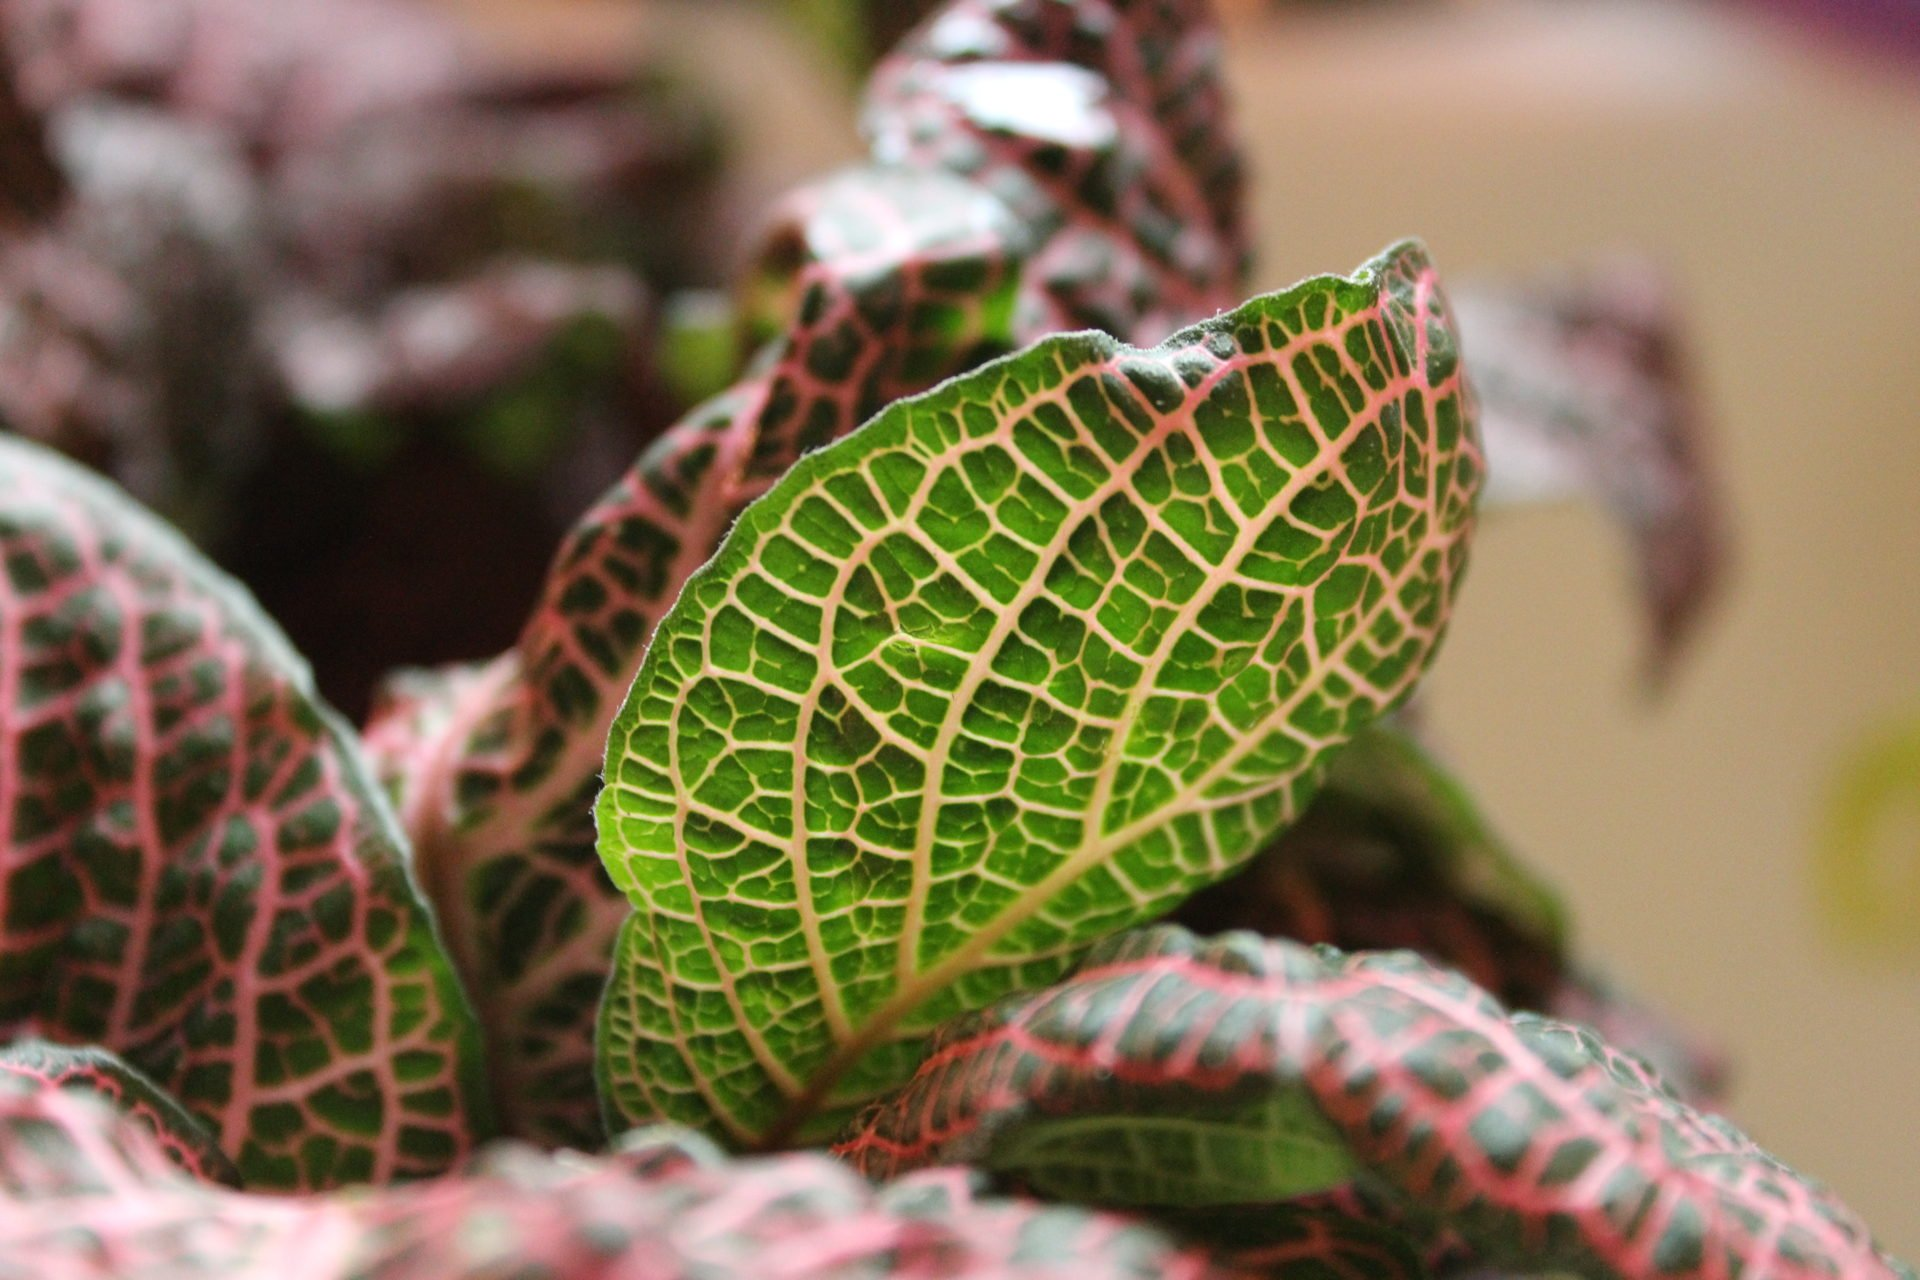 Sun shining through the leaf of the fittonia